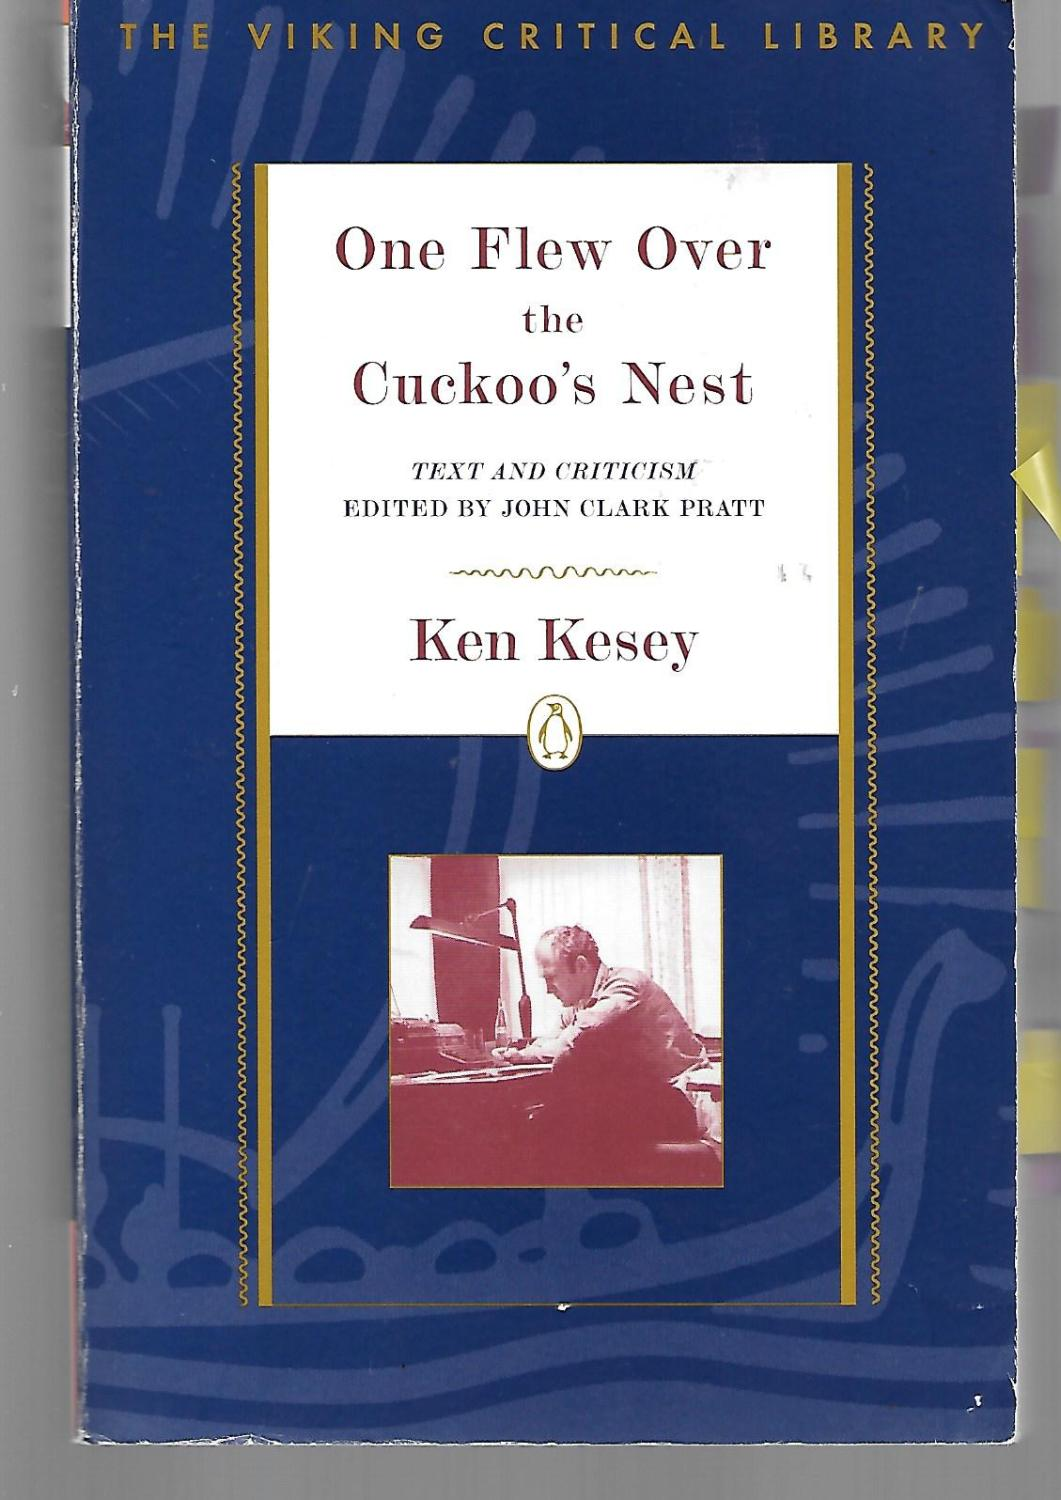 one flew over the cuckoo s nest not cliffsnotes not sparknotes by one flew over the cuckoo s nest not cliffsnotes not sparknotes by ken kesey